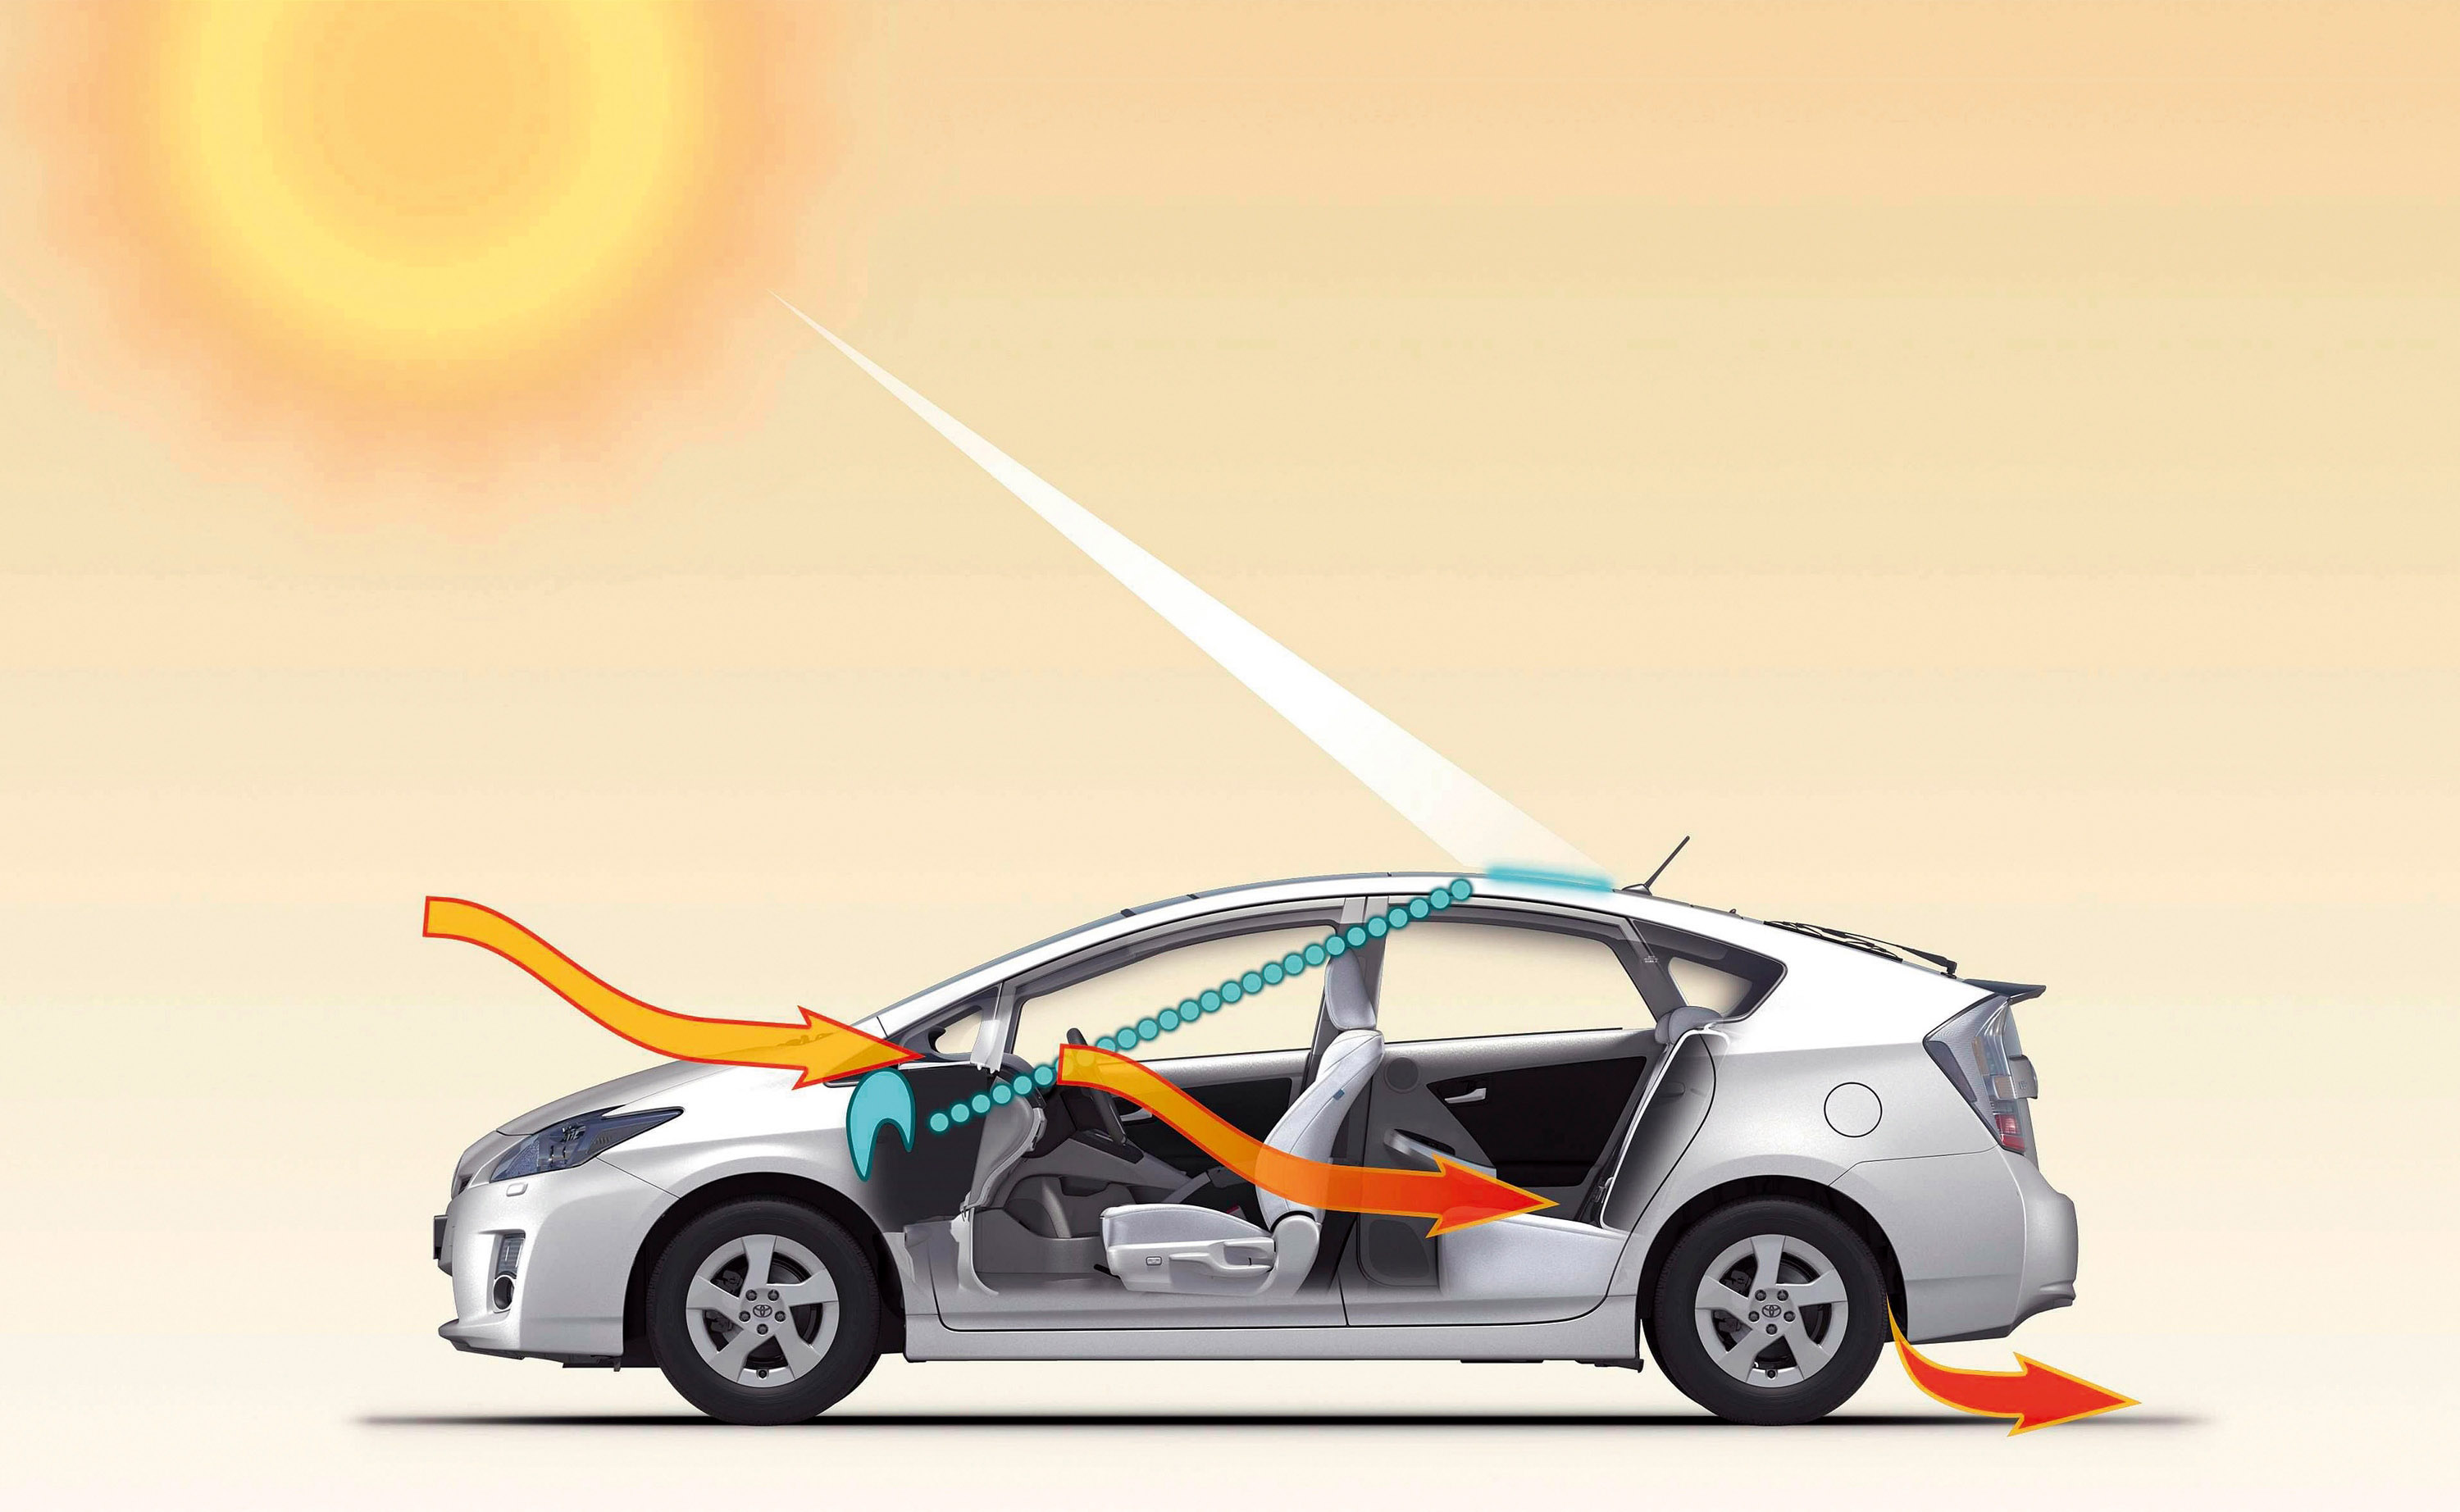 New Prius Cooled By The Heat The Sun